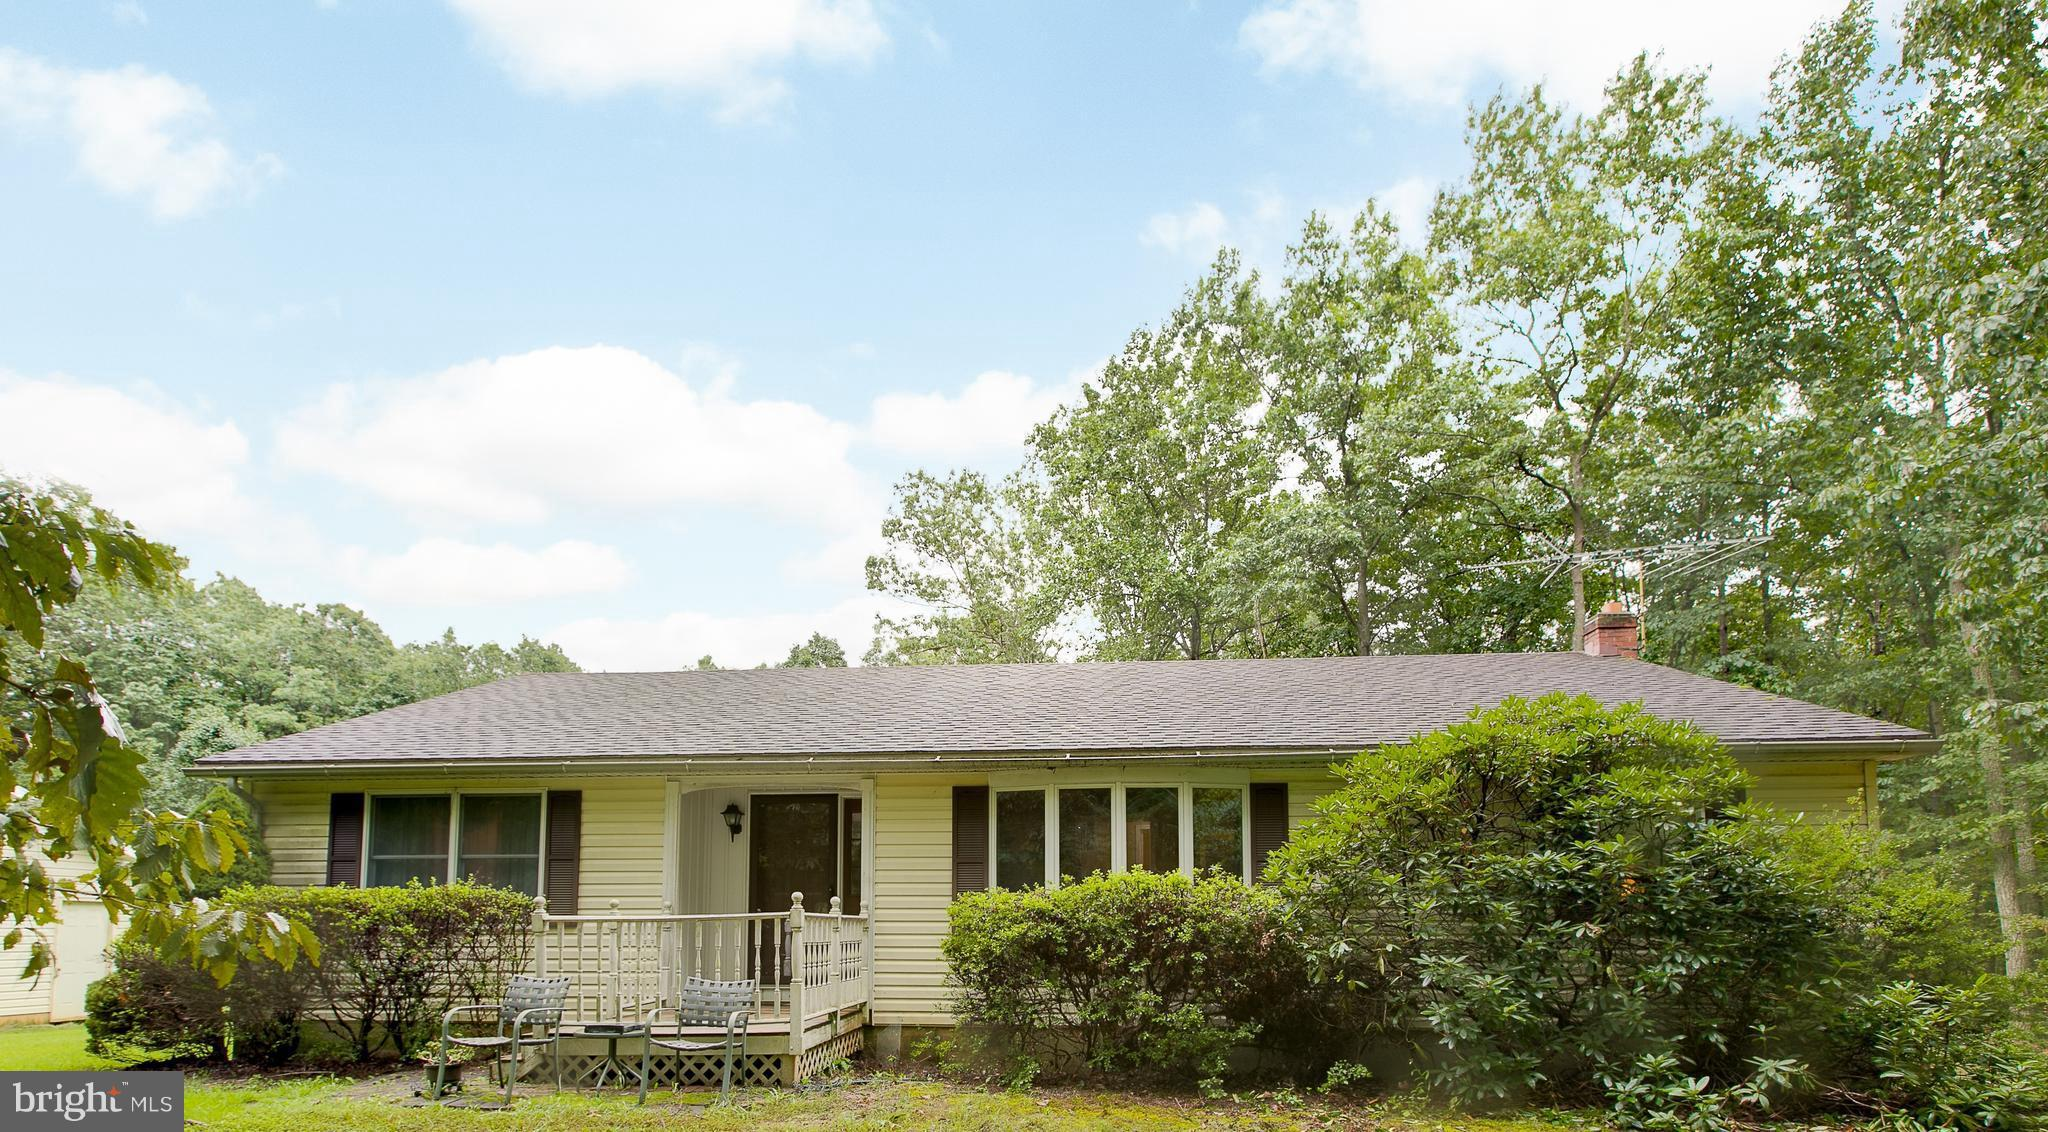 12523 TOWER HILL ROAD, MIDLAND, VA 22728